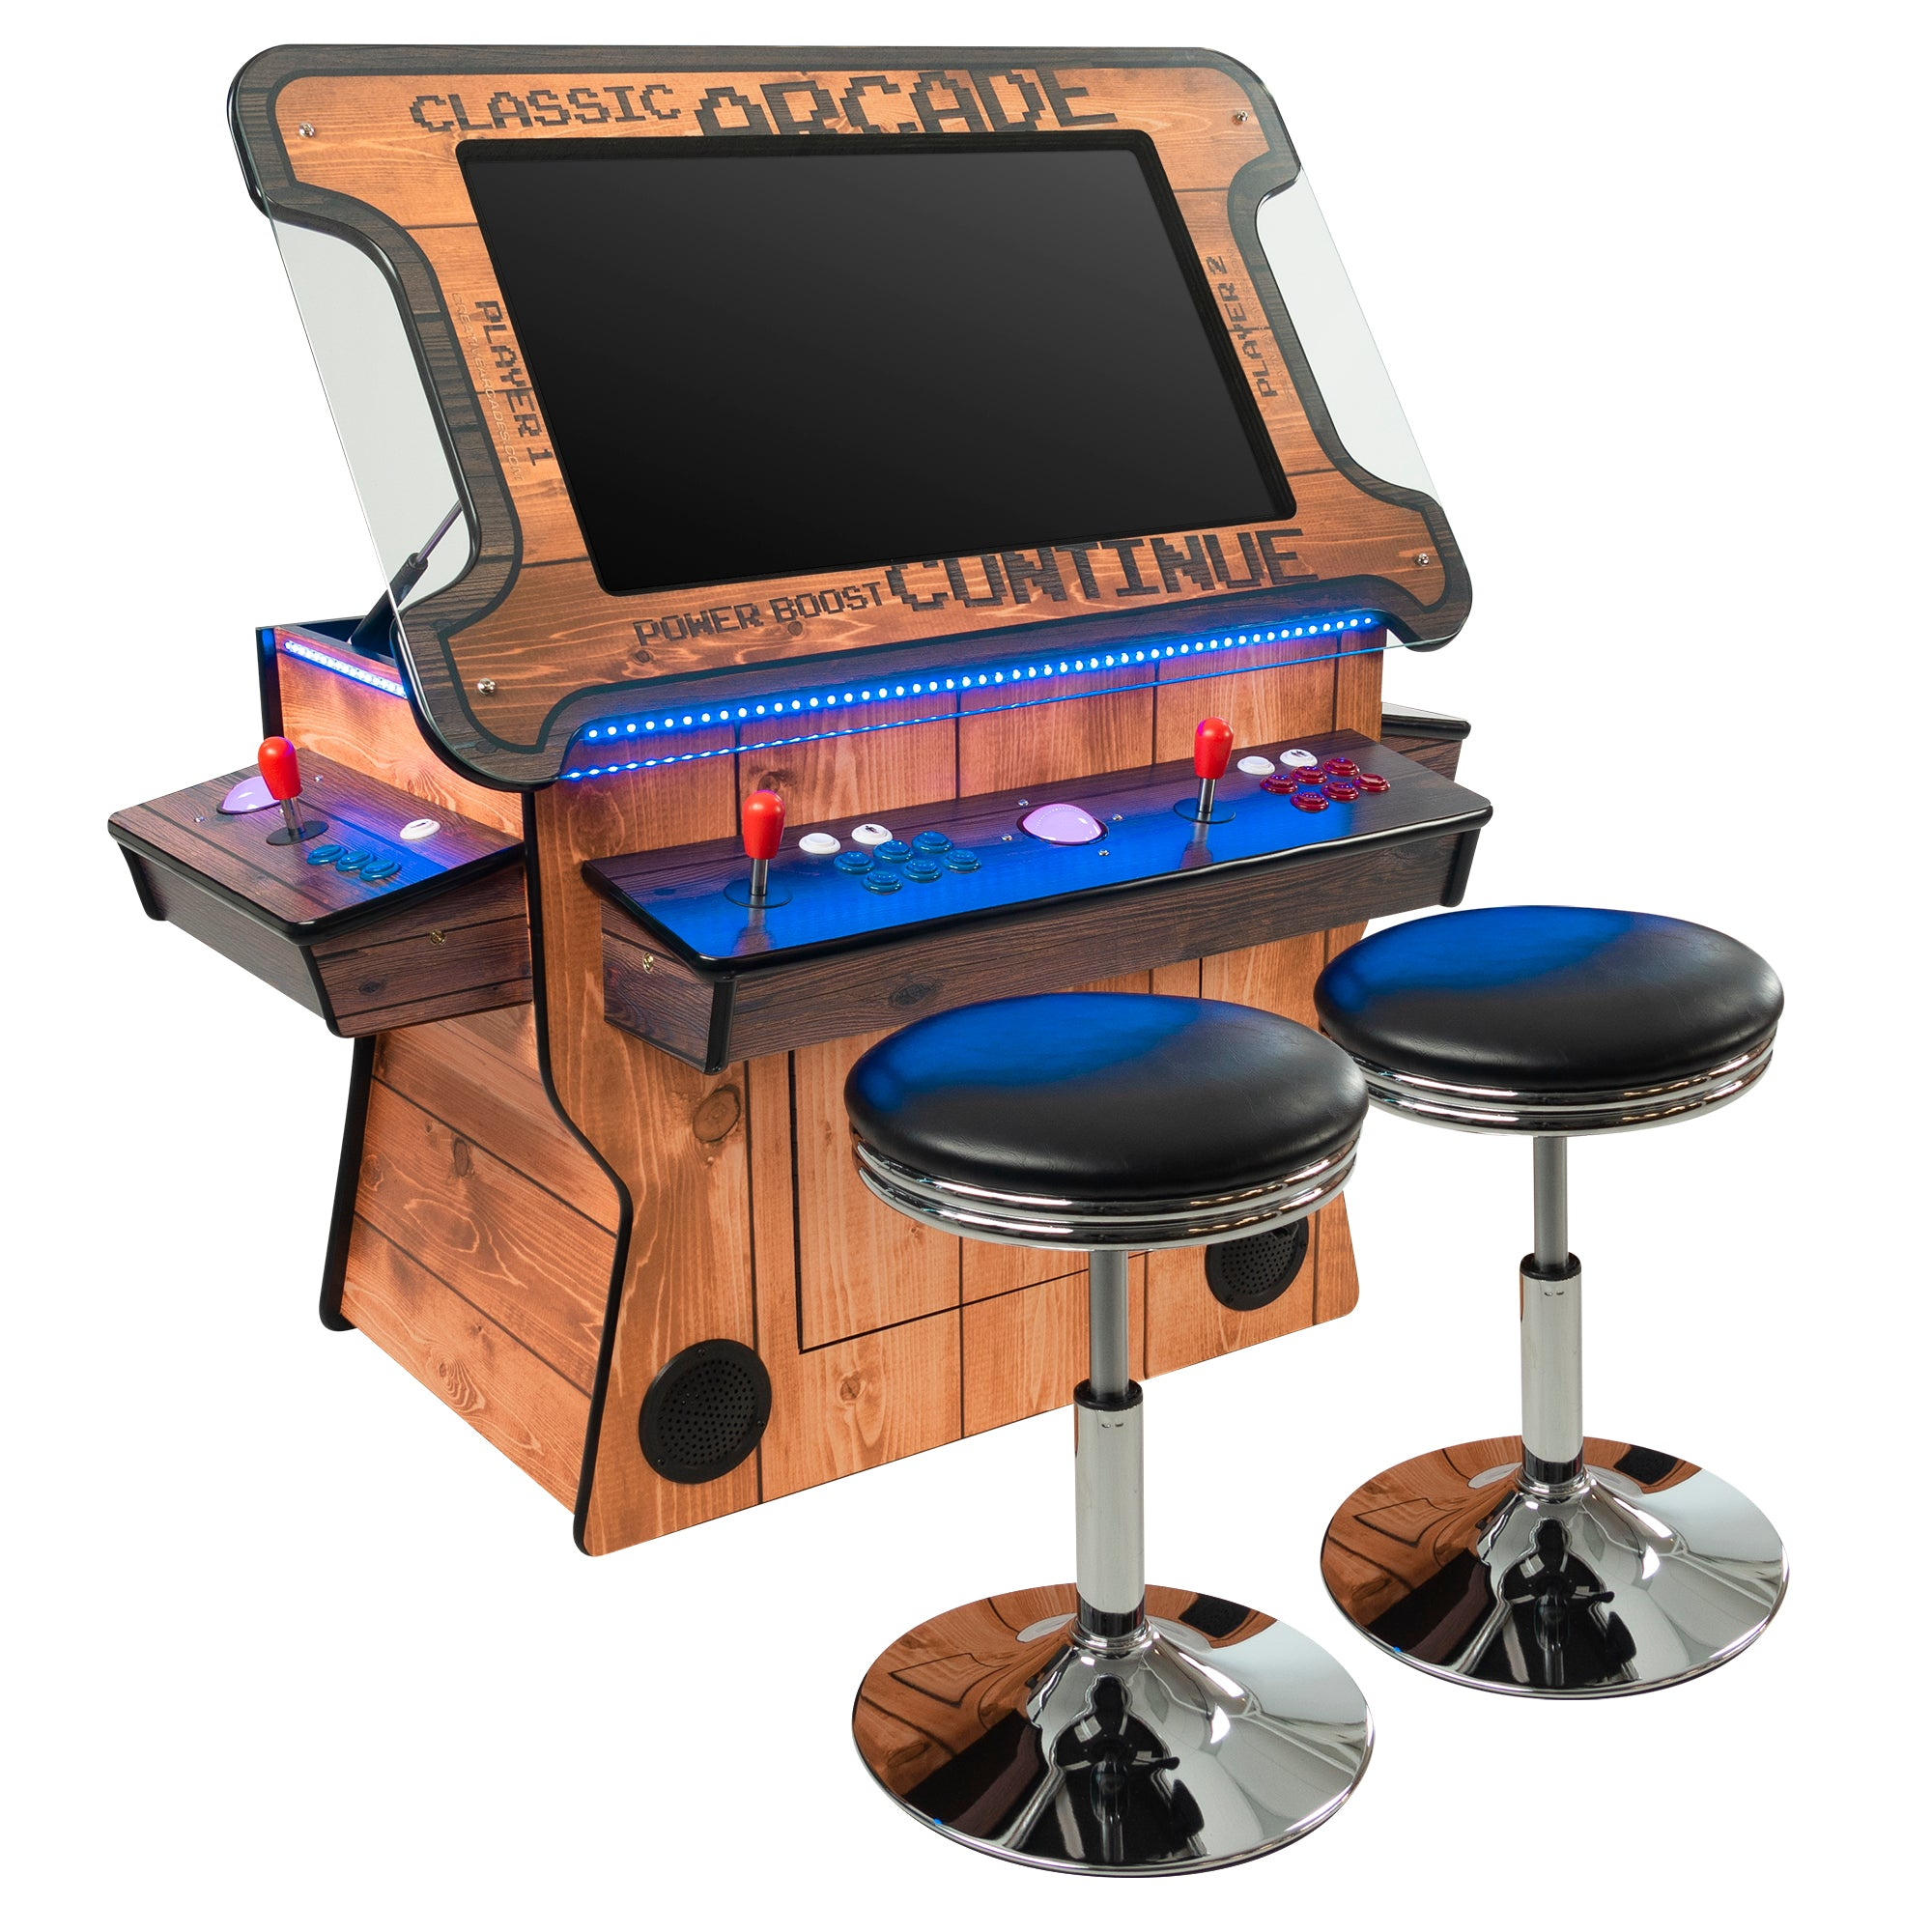 "2 Player 3 Sided Tilt-Screen Cocktail Arcade with Trackball | Woodgrain Edition | 3500-4500 Games | 32"" LCD Monitor 